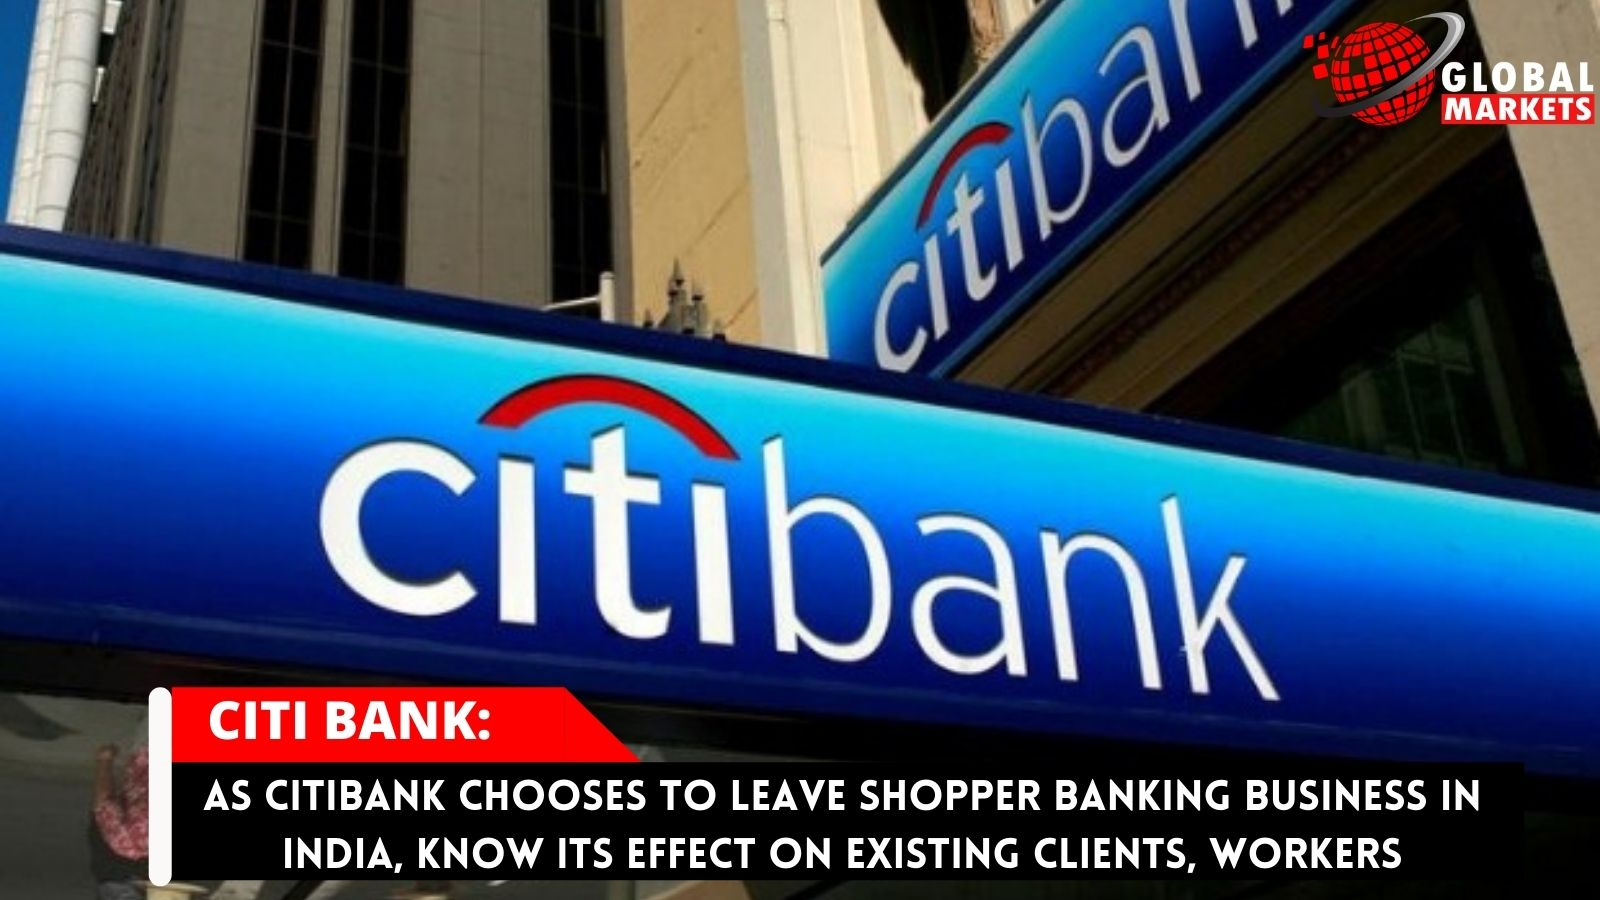 As Citibank chooses to leave shopper banking business in India, know its effect on existing clients, workers